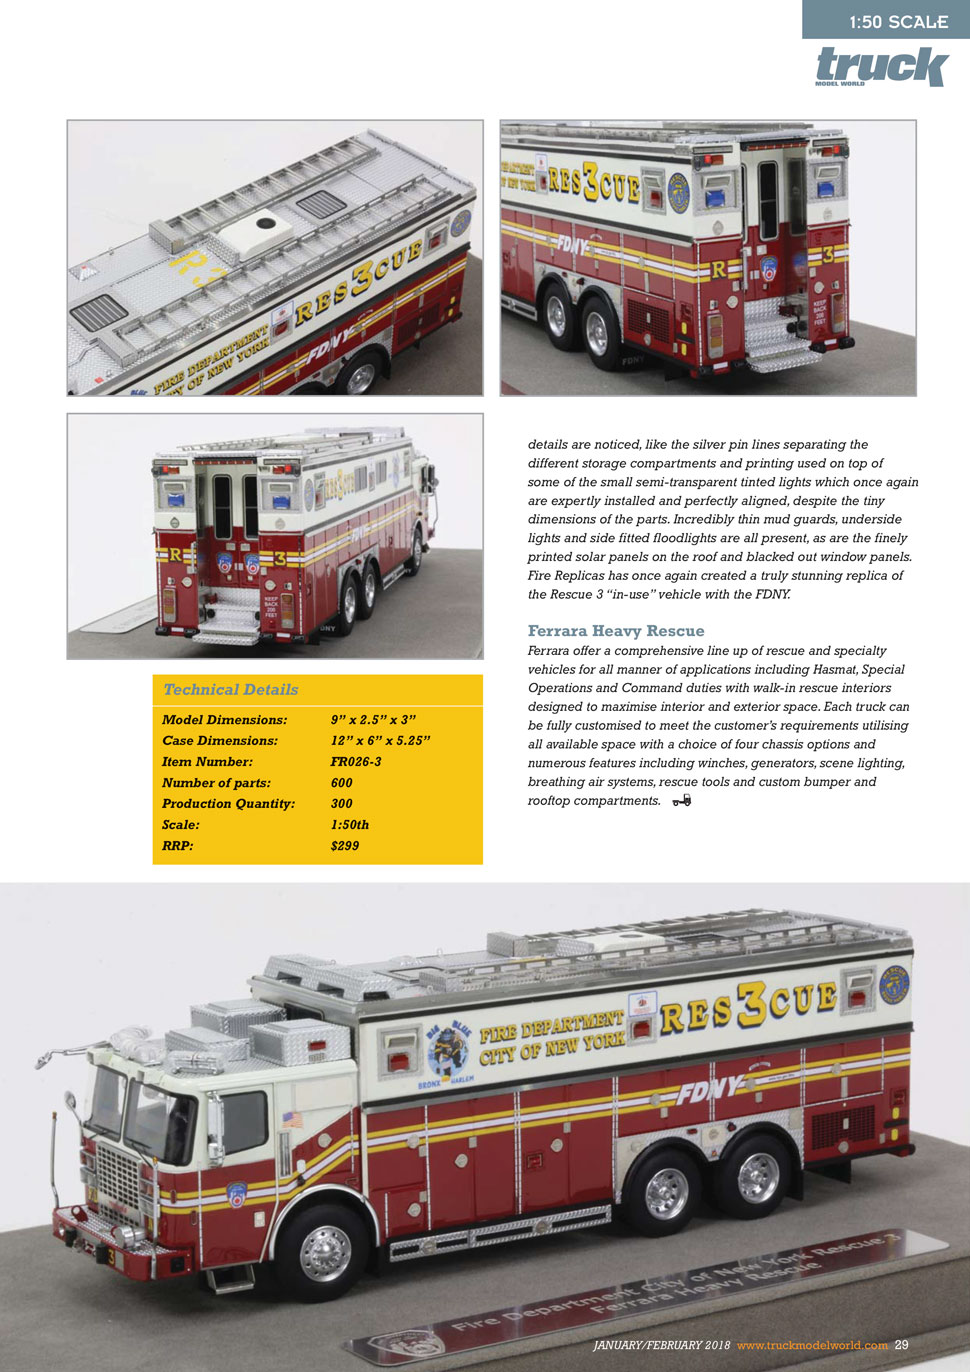 FDNY's Rescue 3 receives International magazine attention